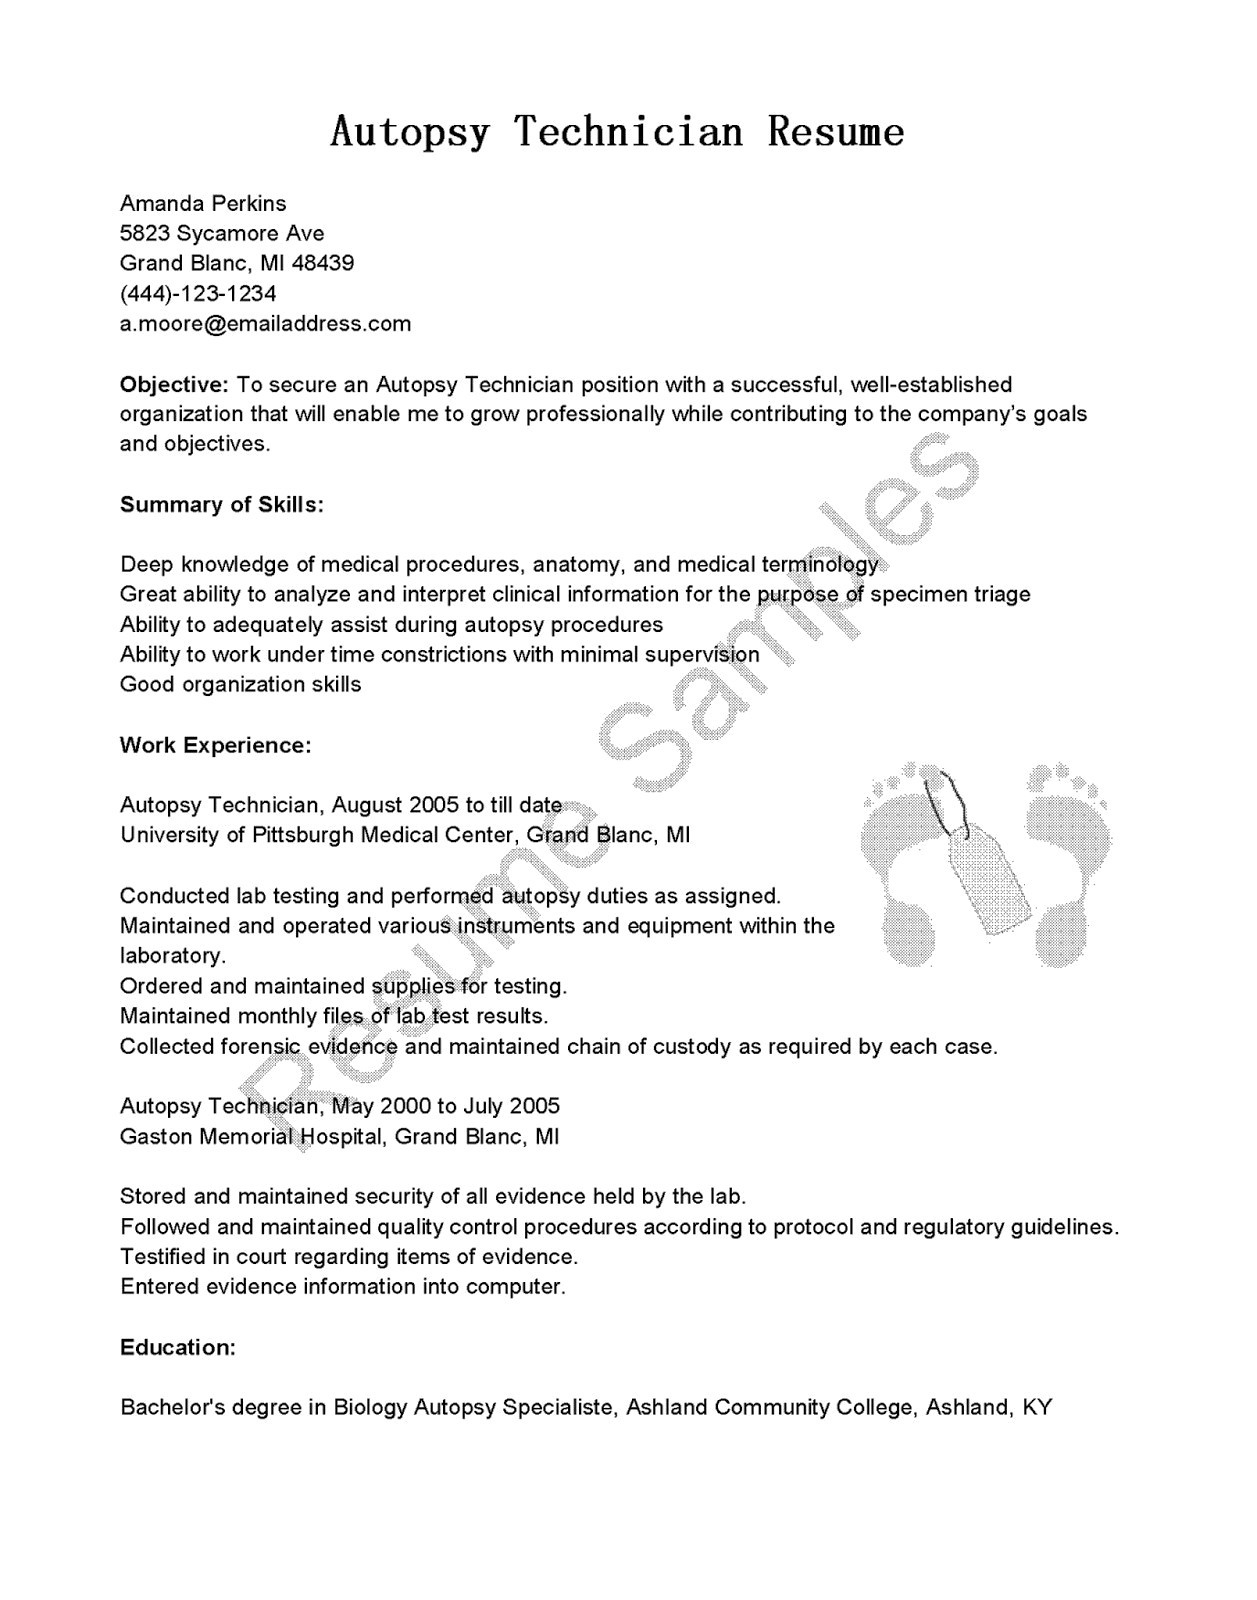 Resume Template Pages - Resume Template for Pages Luxury Job Application Resume New Best